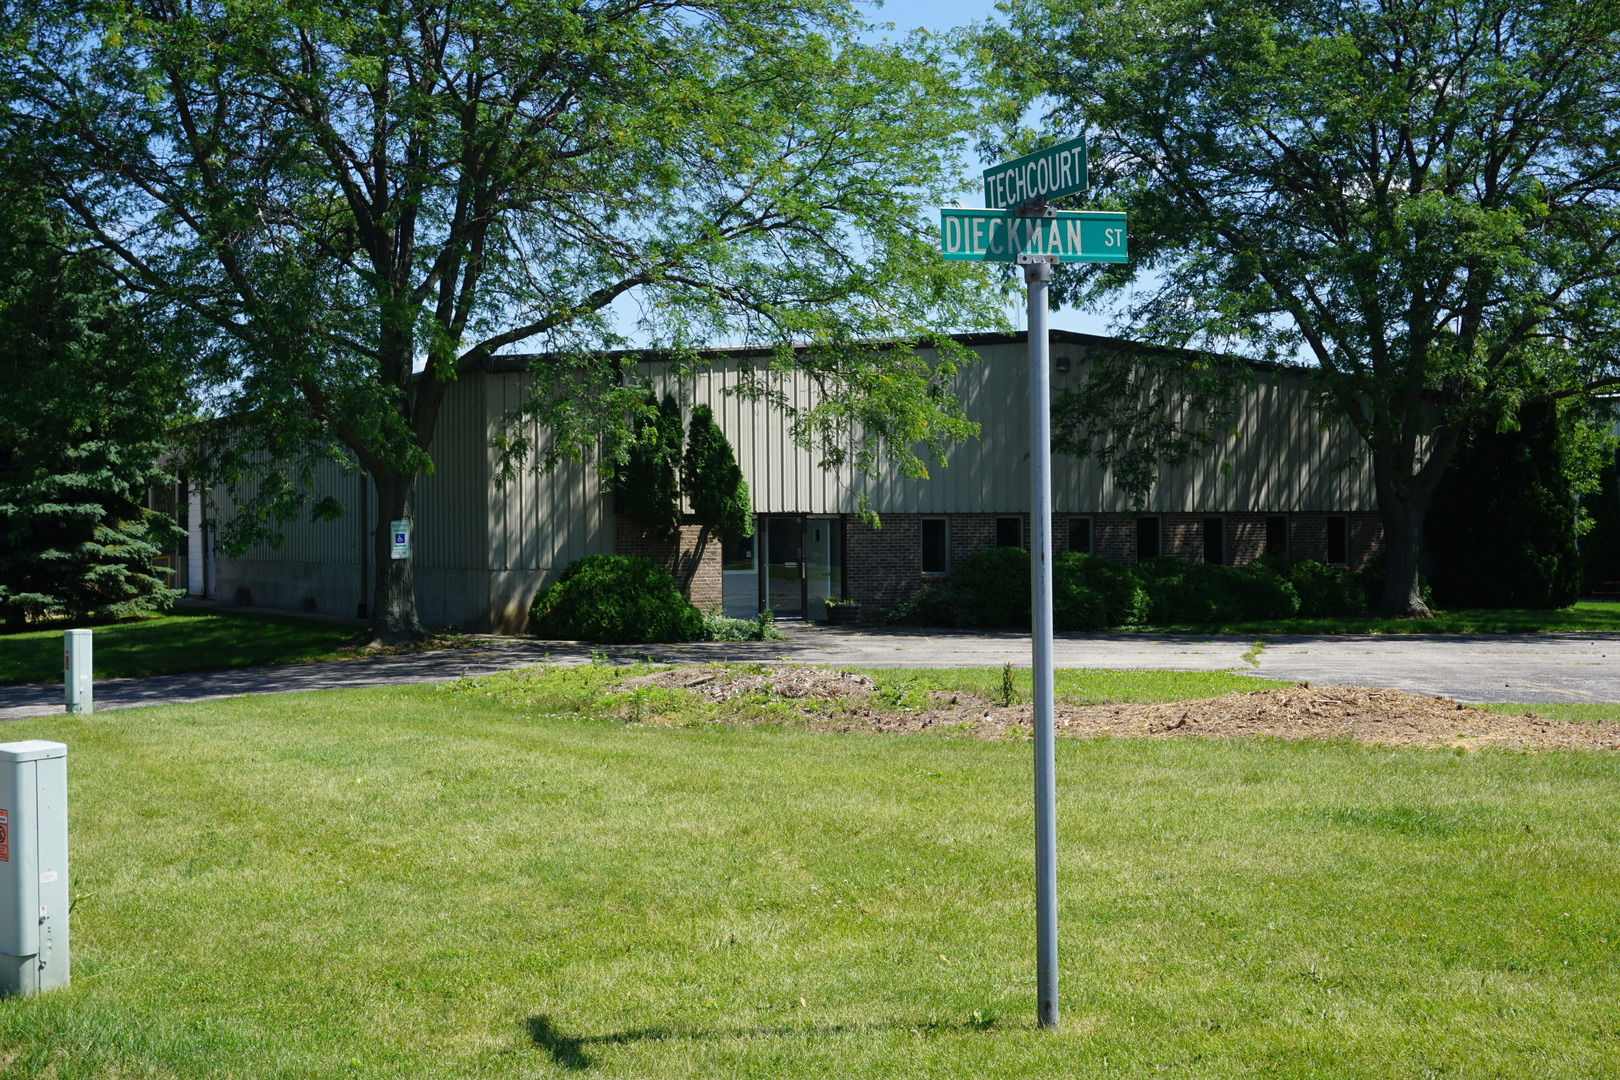 Property for sale at 940 Dieckman Street, Woodstock,  IL 60098